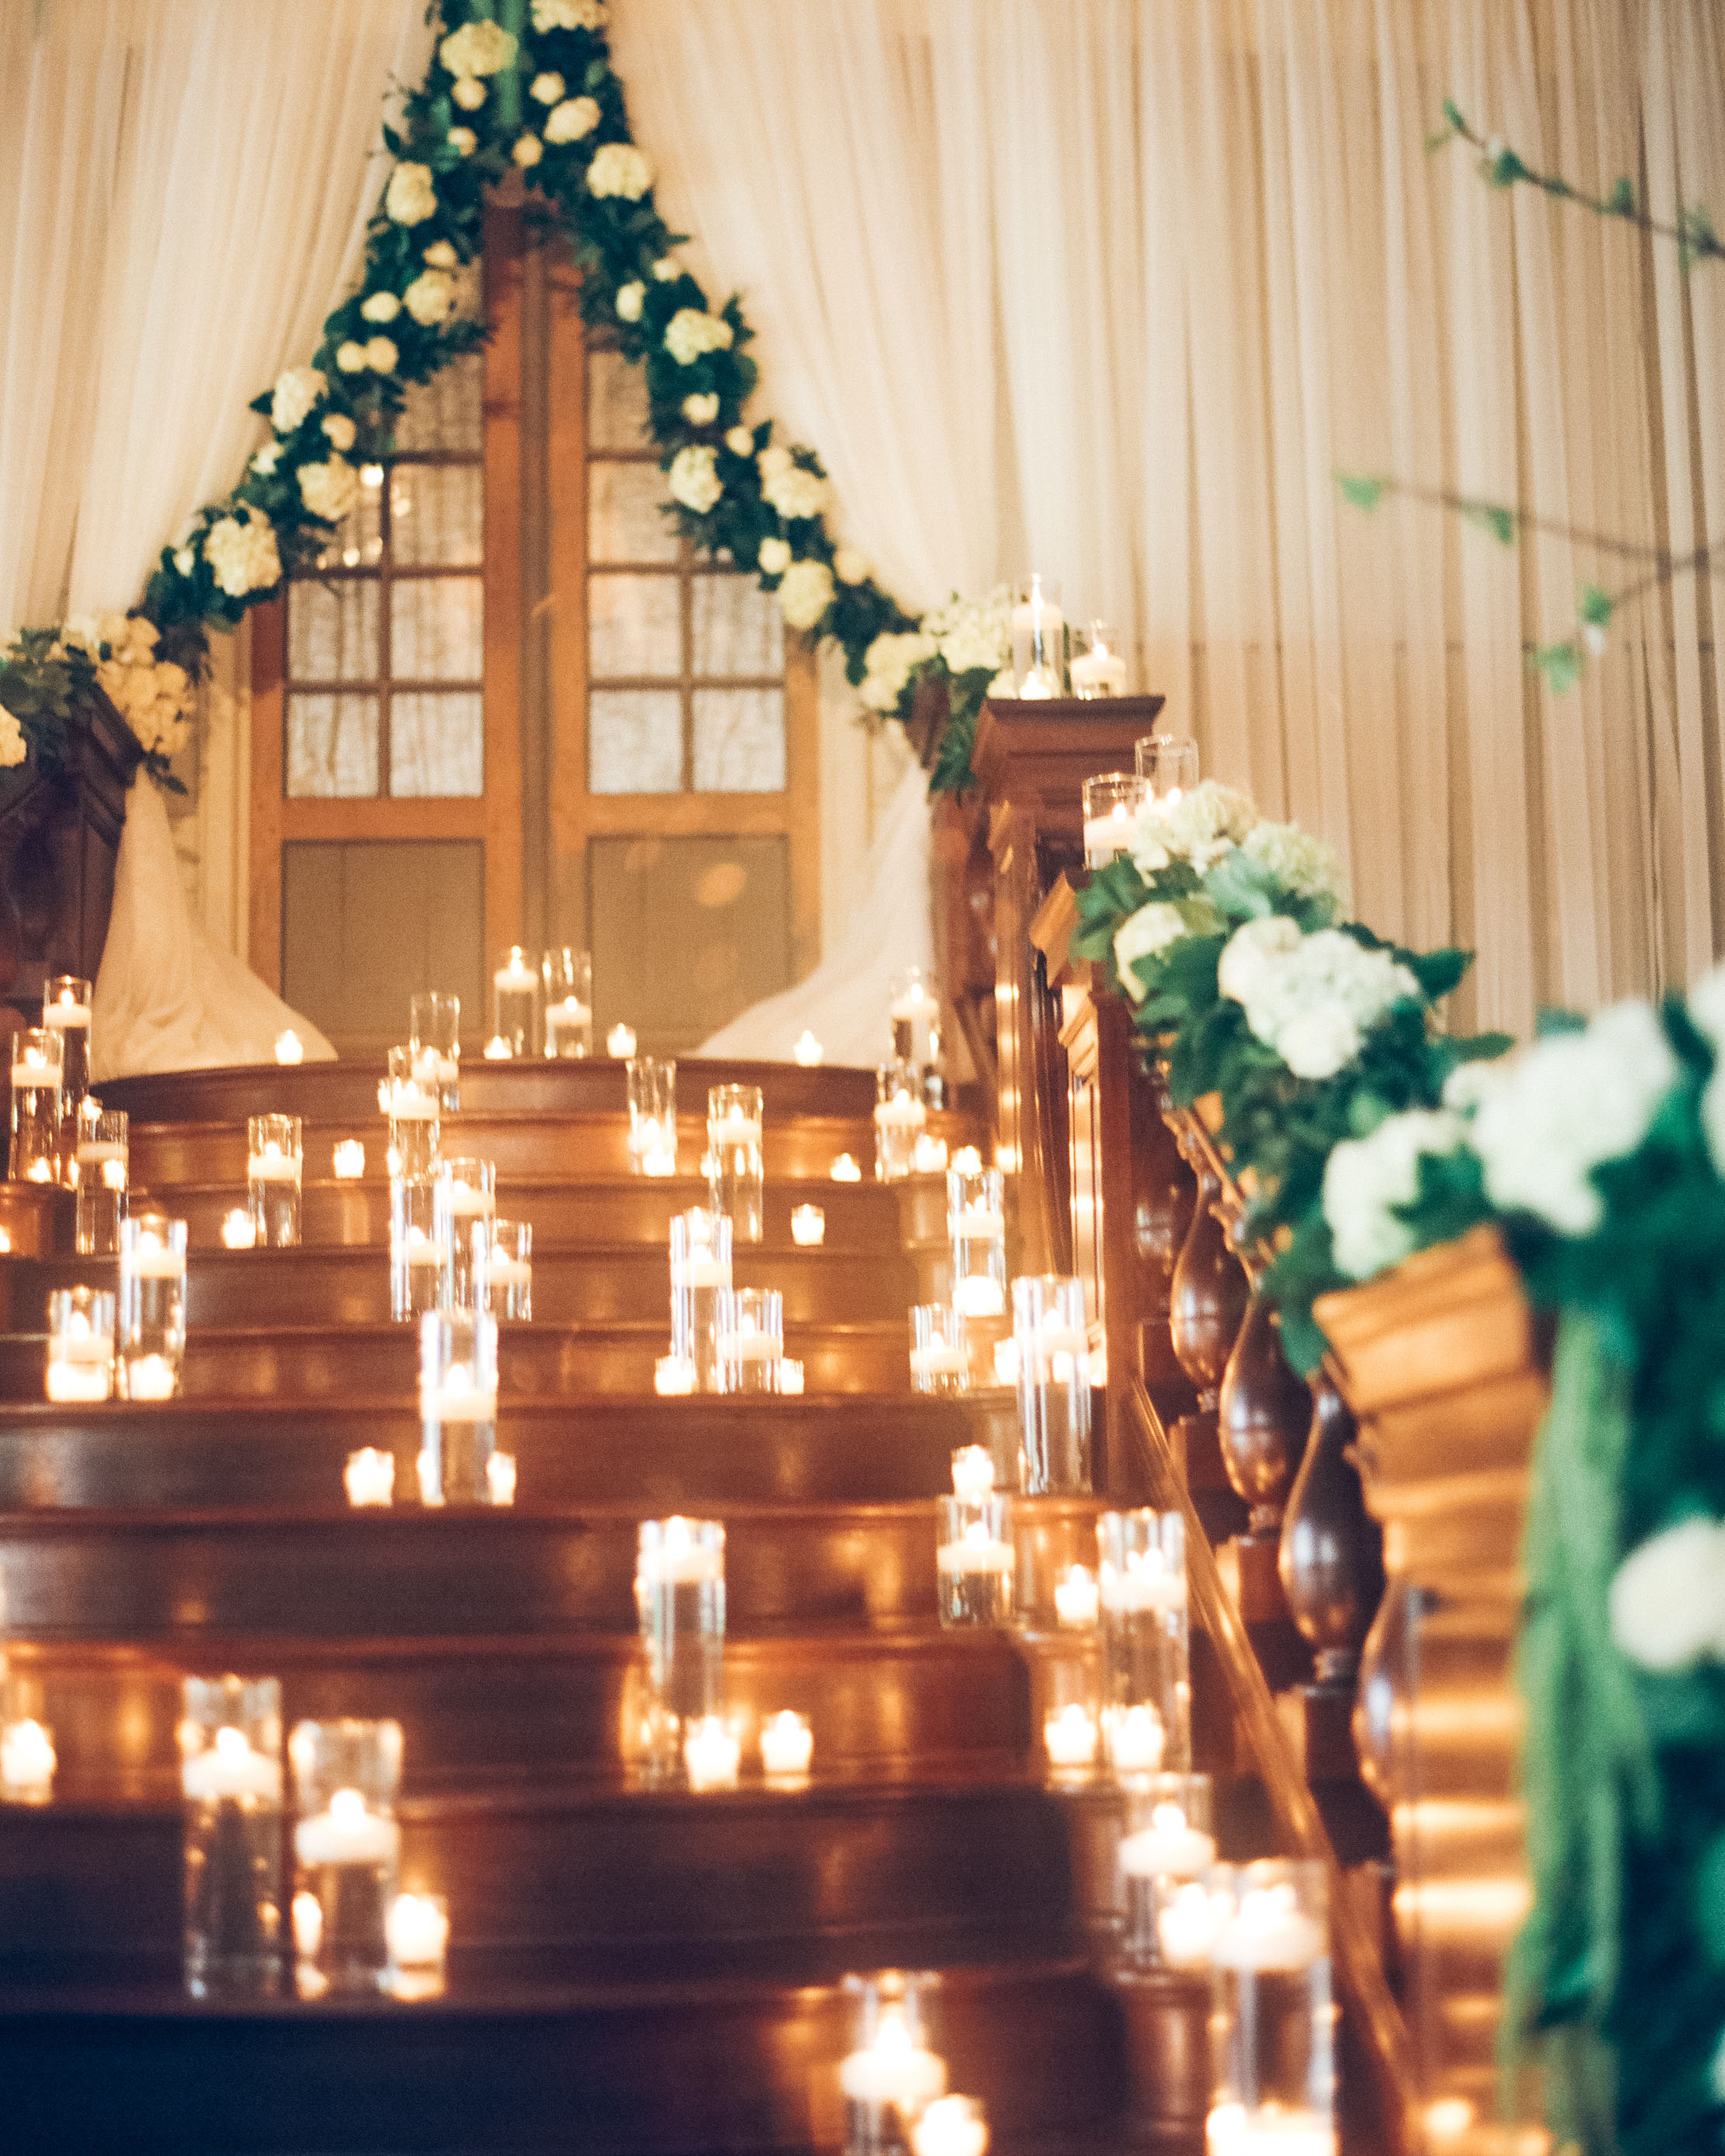 stair banister decor candle lighting greenery backdrop